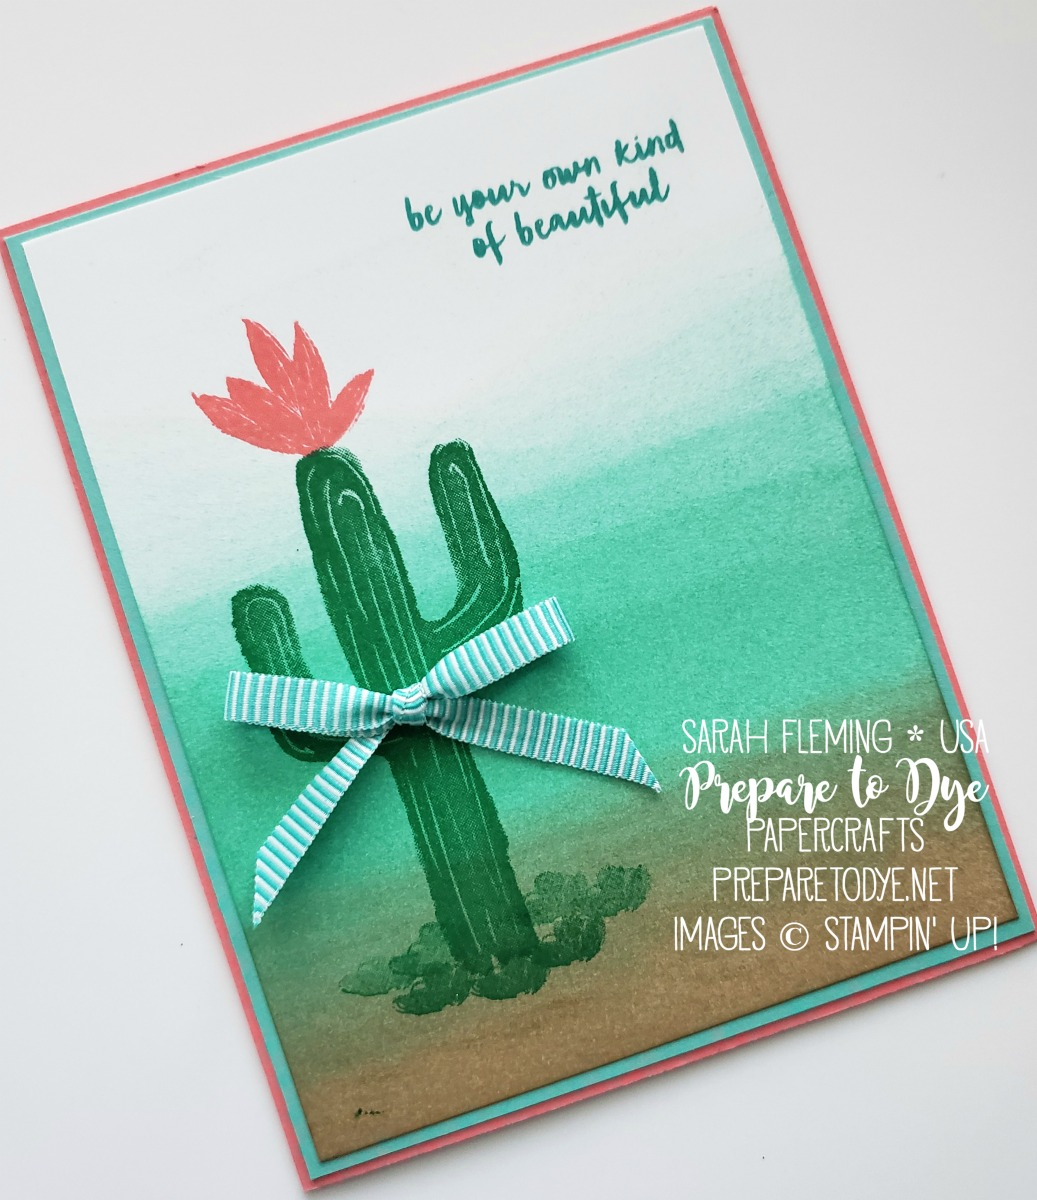 Stampin' Up! handmade friend or encouragement card using Flowering Desert, sponge brayers - VIDEO TUTORIAL - sponged landscape background - Sarah Fleming - Prepare to Dye Papercrafts